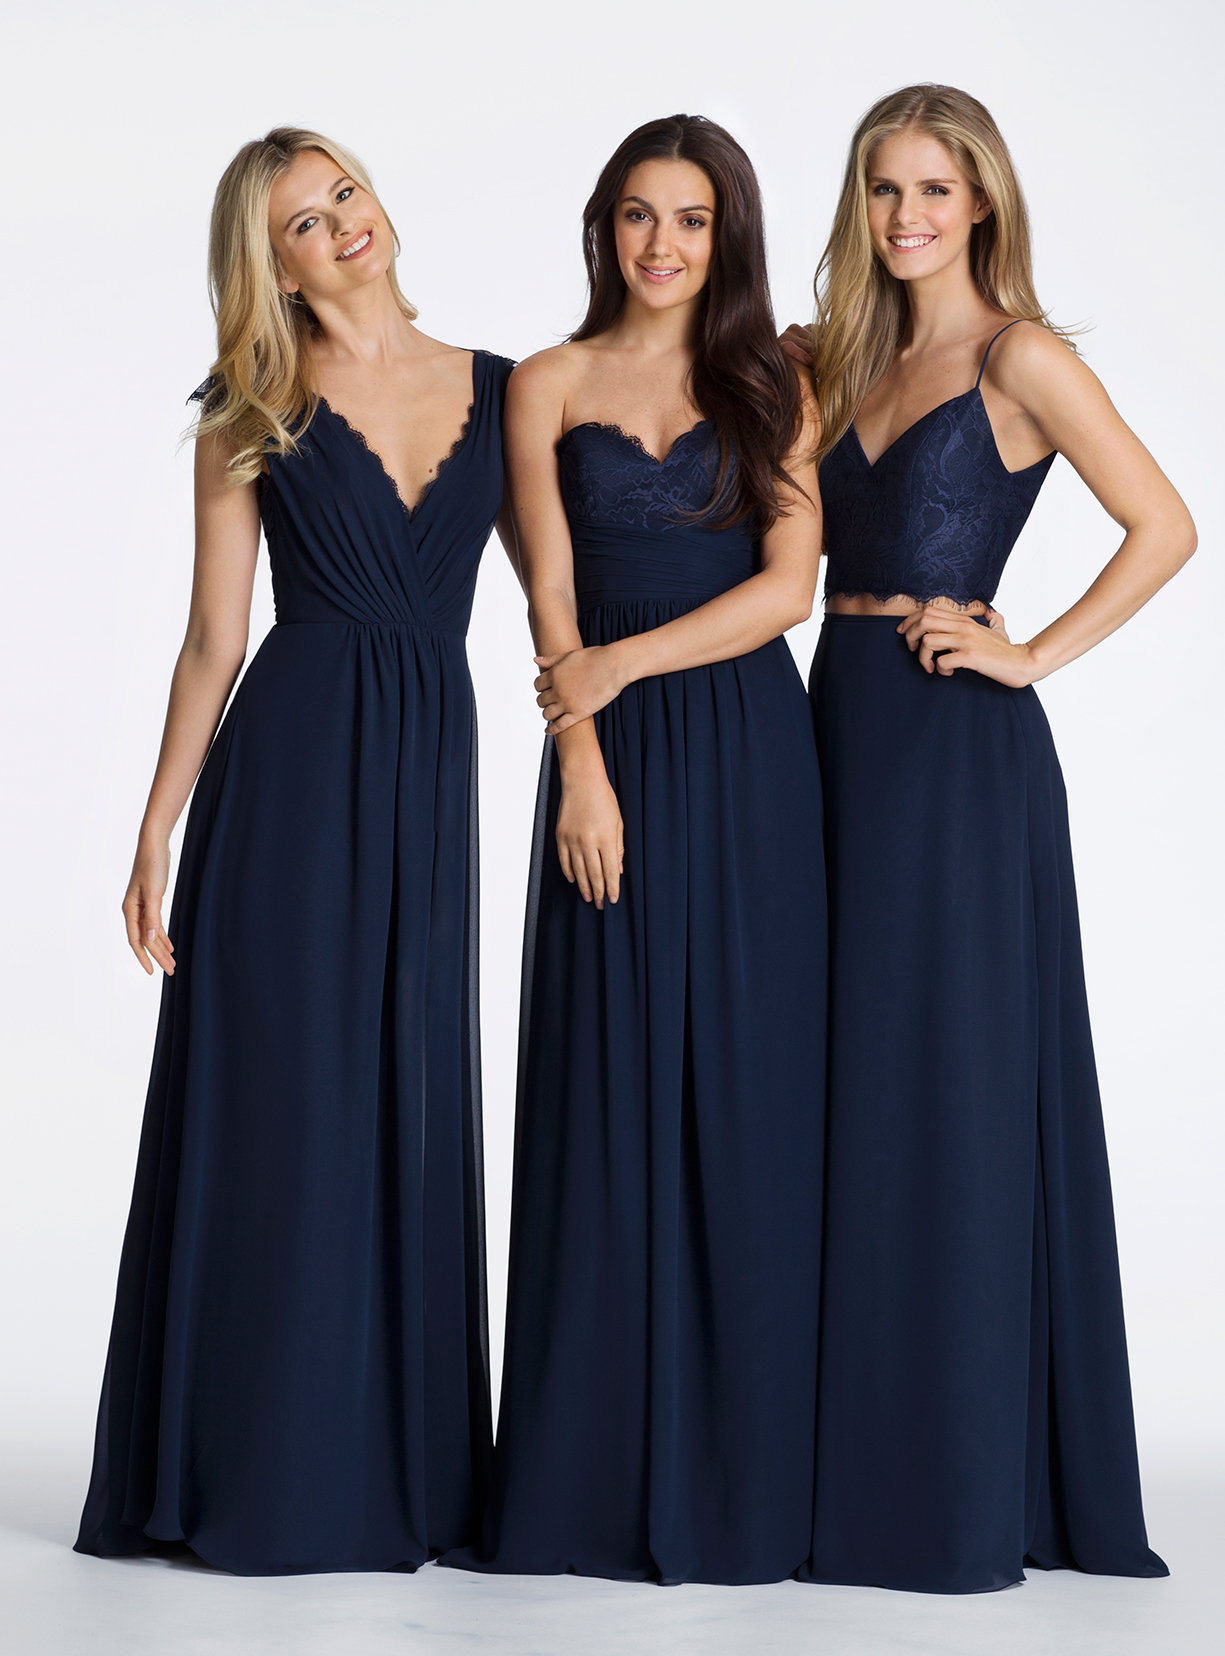 Bridesmaids special occasion dresses and bridal party gowns by style 5601 group view ombrellifo Images